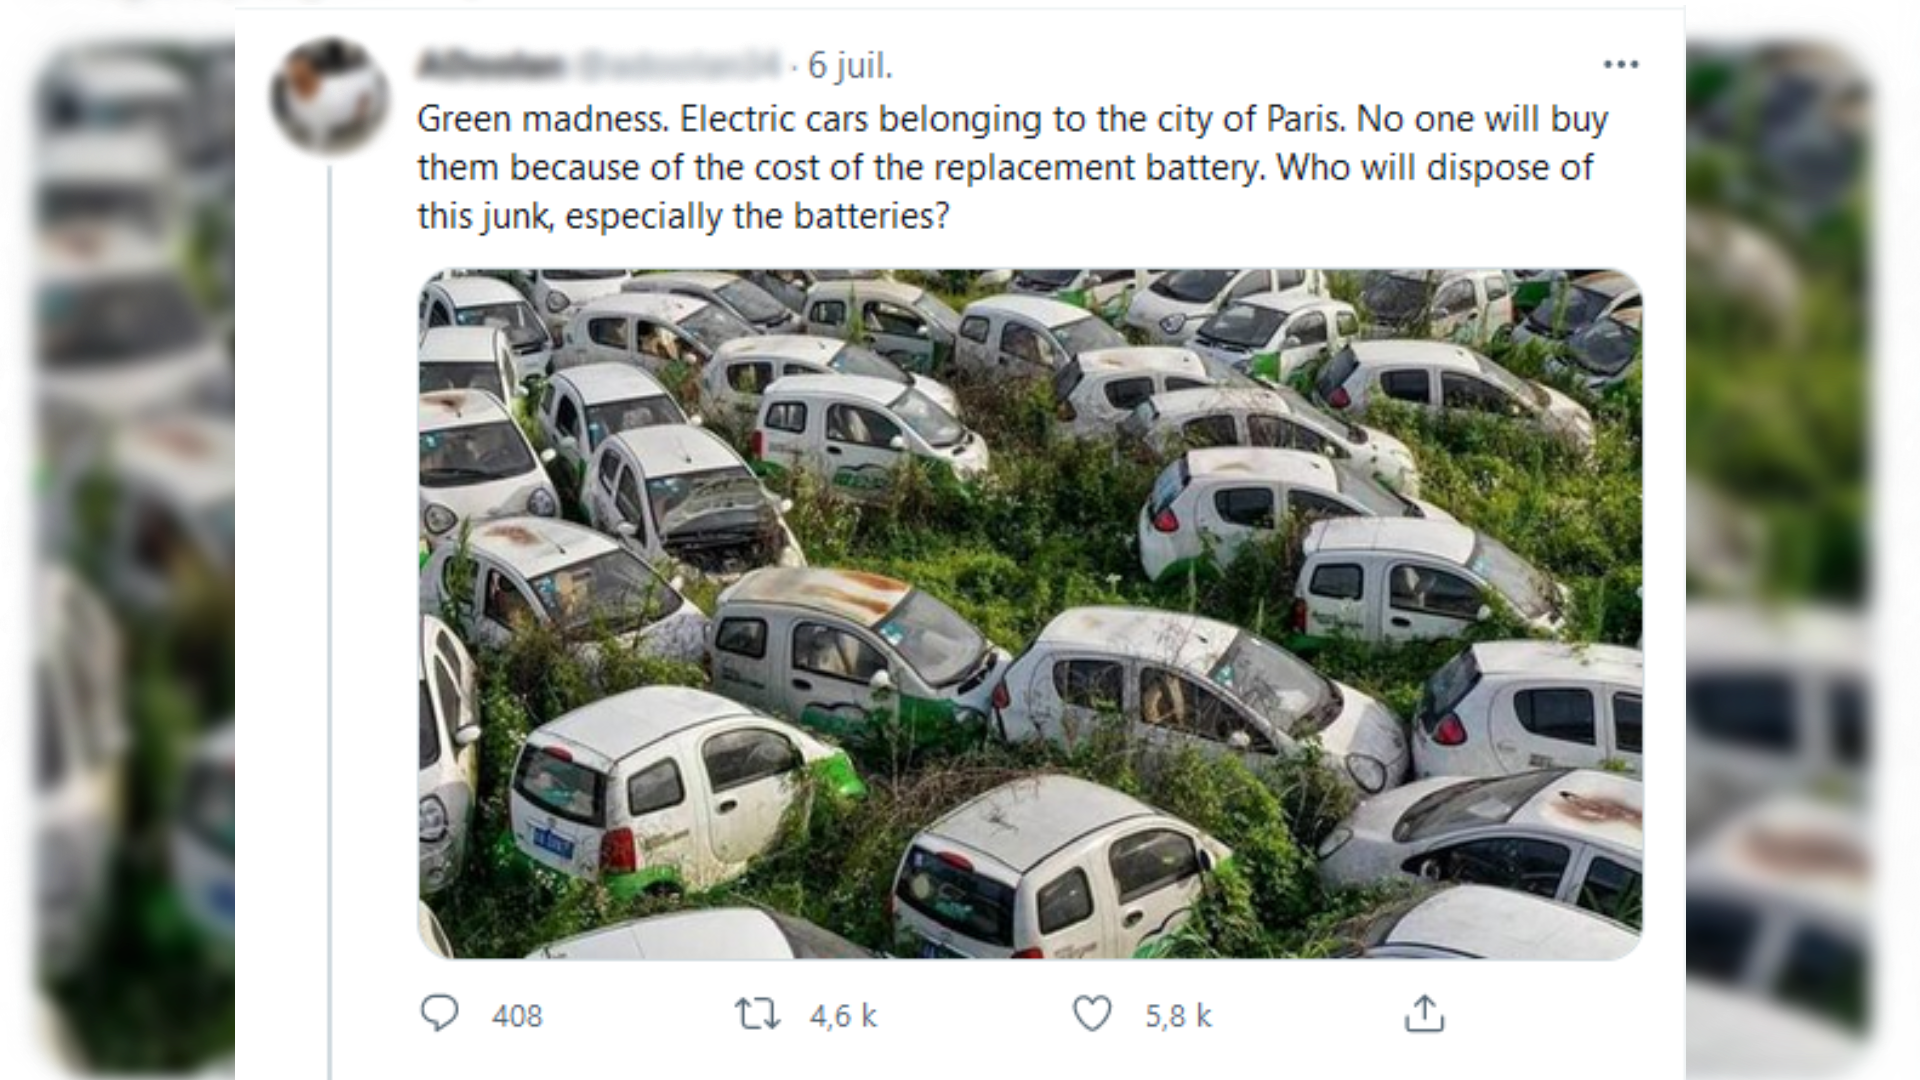 This is a screengrab of a tweet talking about electric cars belonging to the city of Paris. This tweet was shared five thousand times.  To check it out, click on the image.